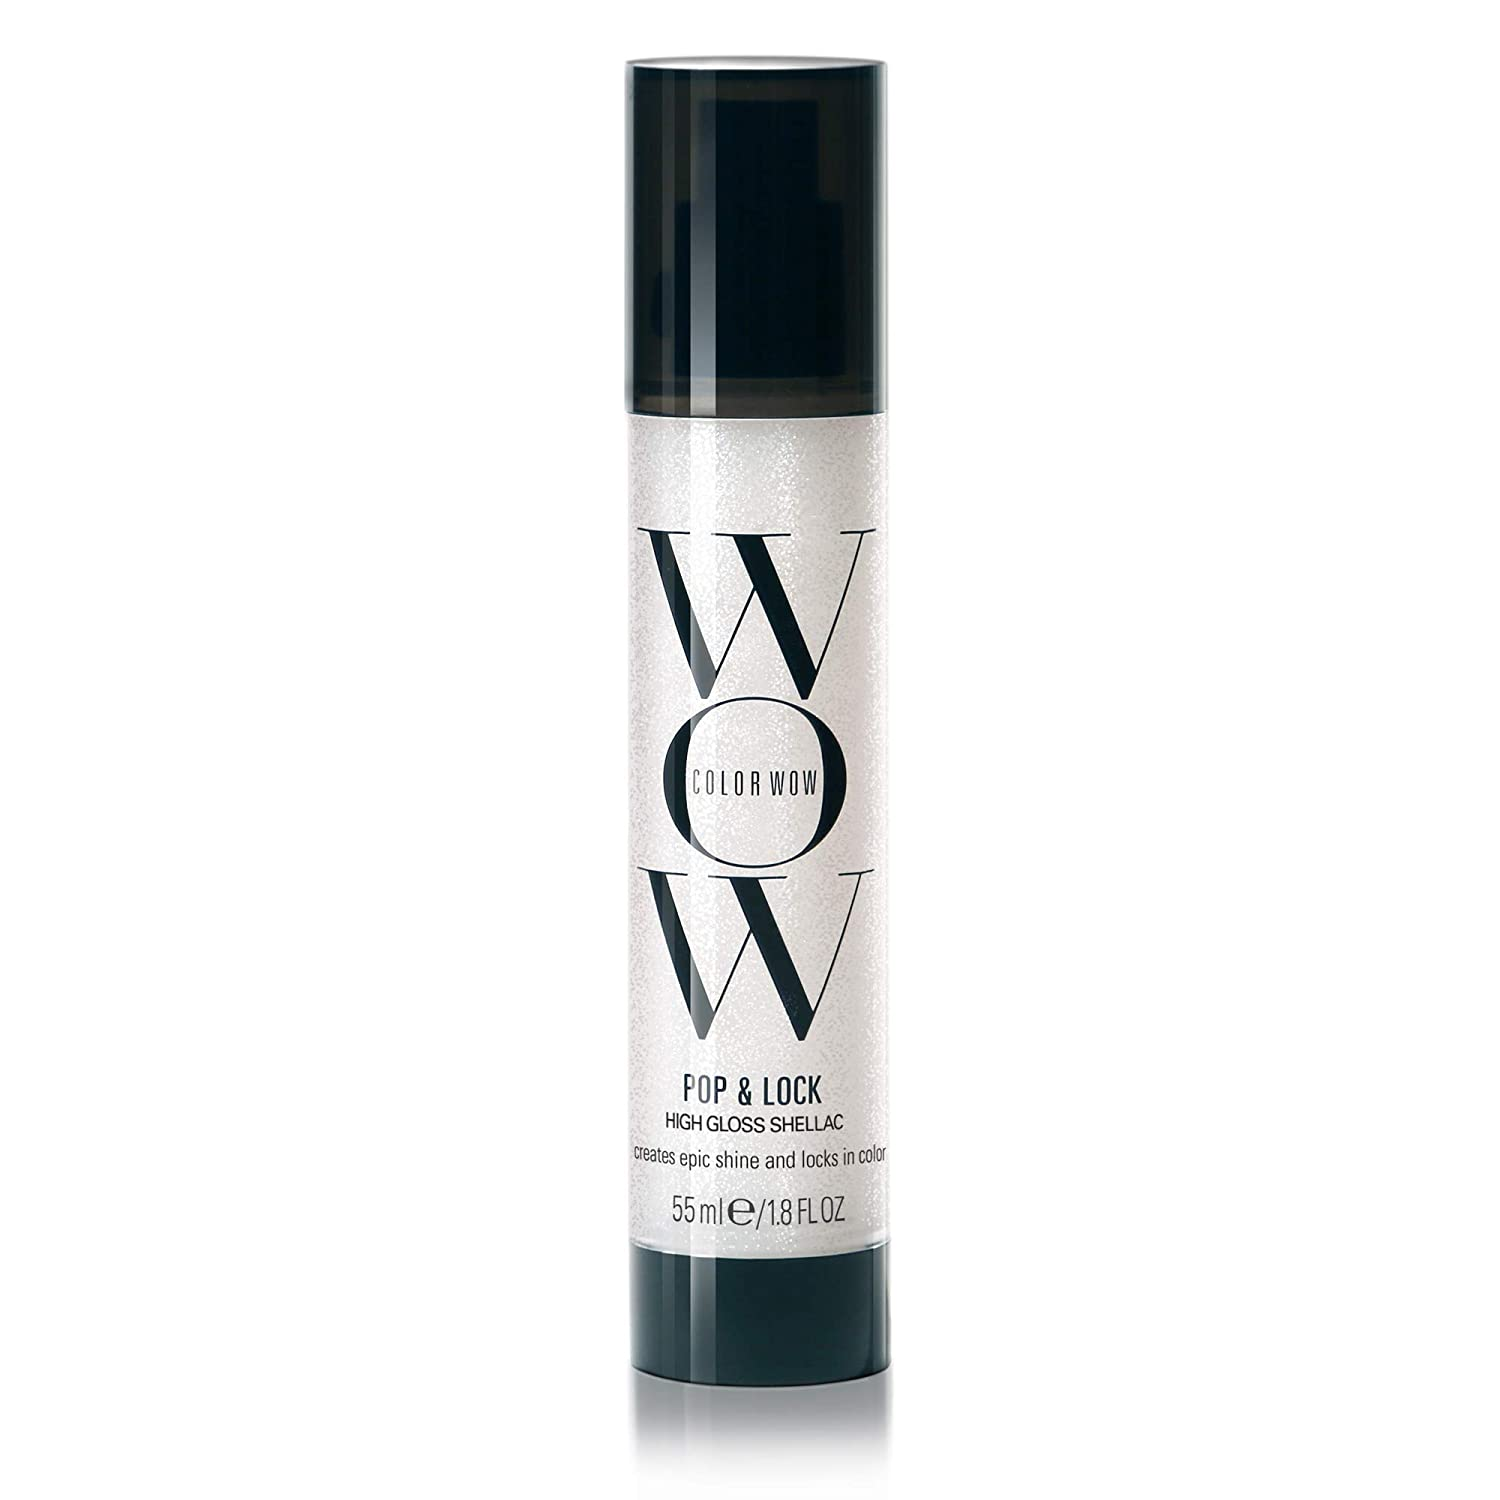 COLOR WOW Pop and Lock High Gloss Shellac, 1.8 Fl Oz